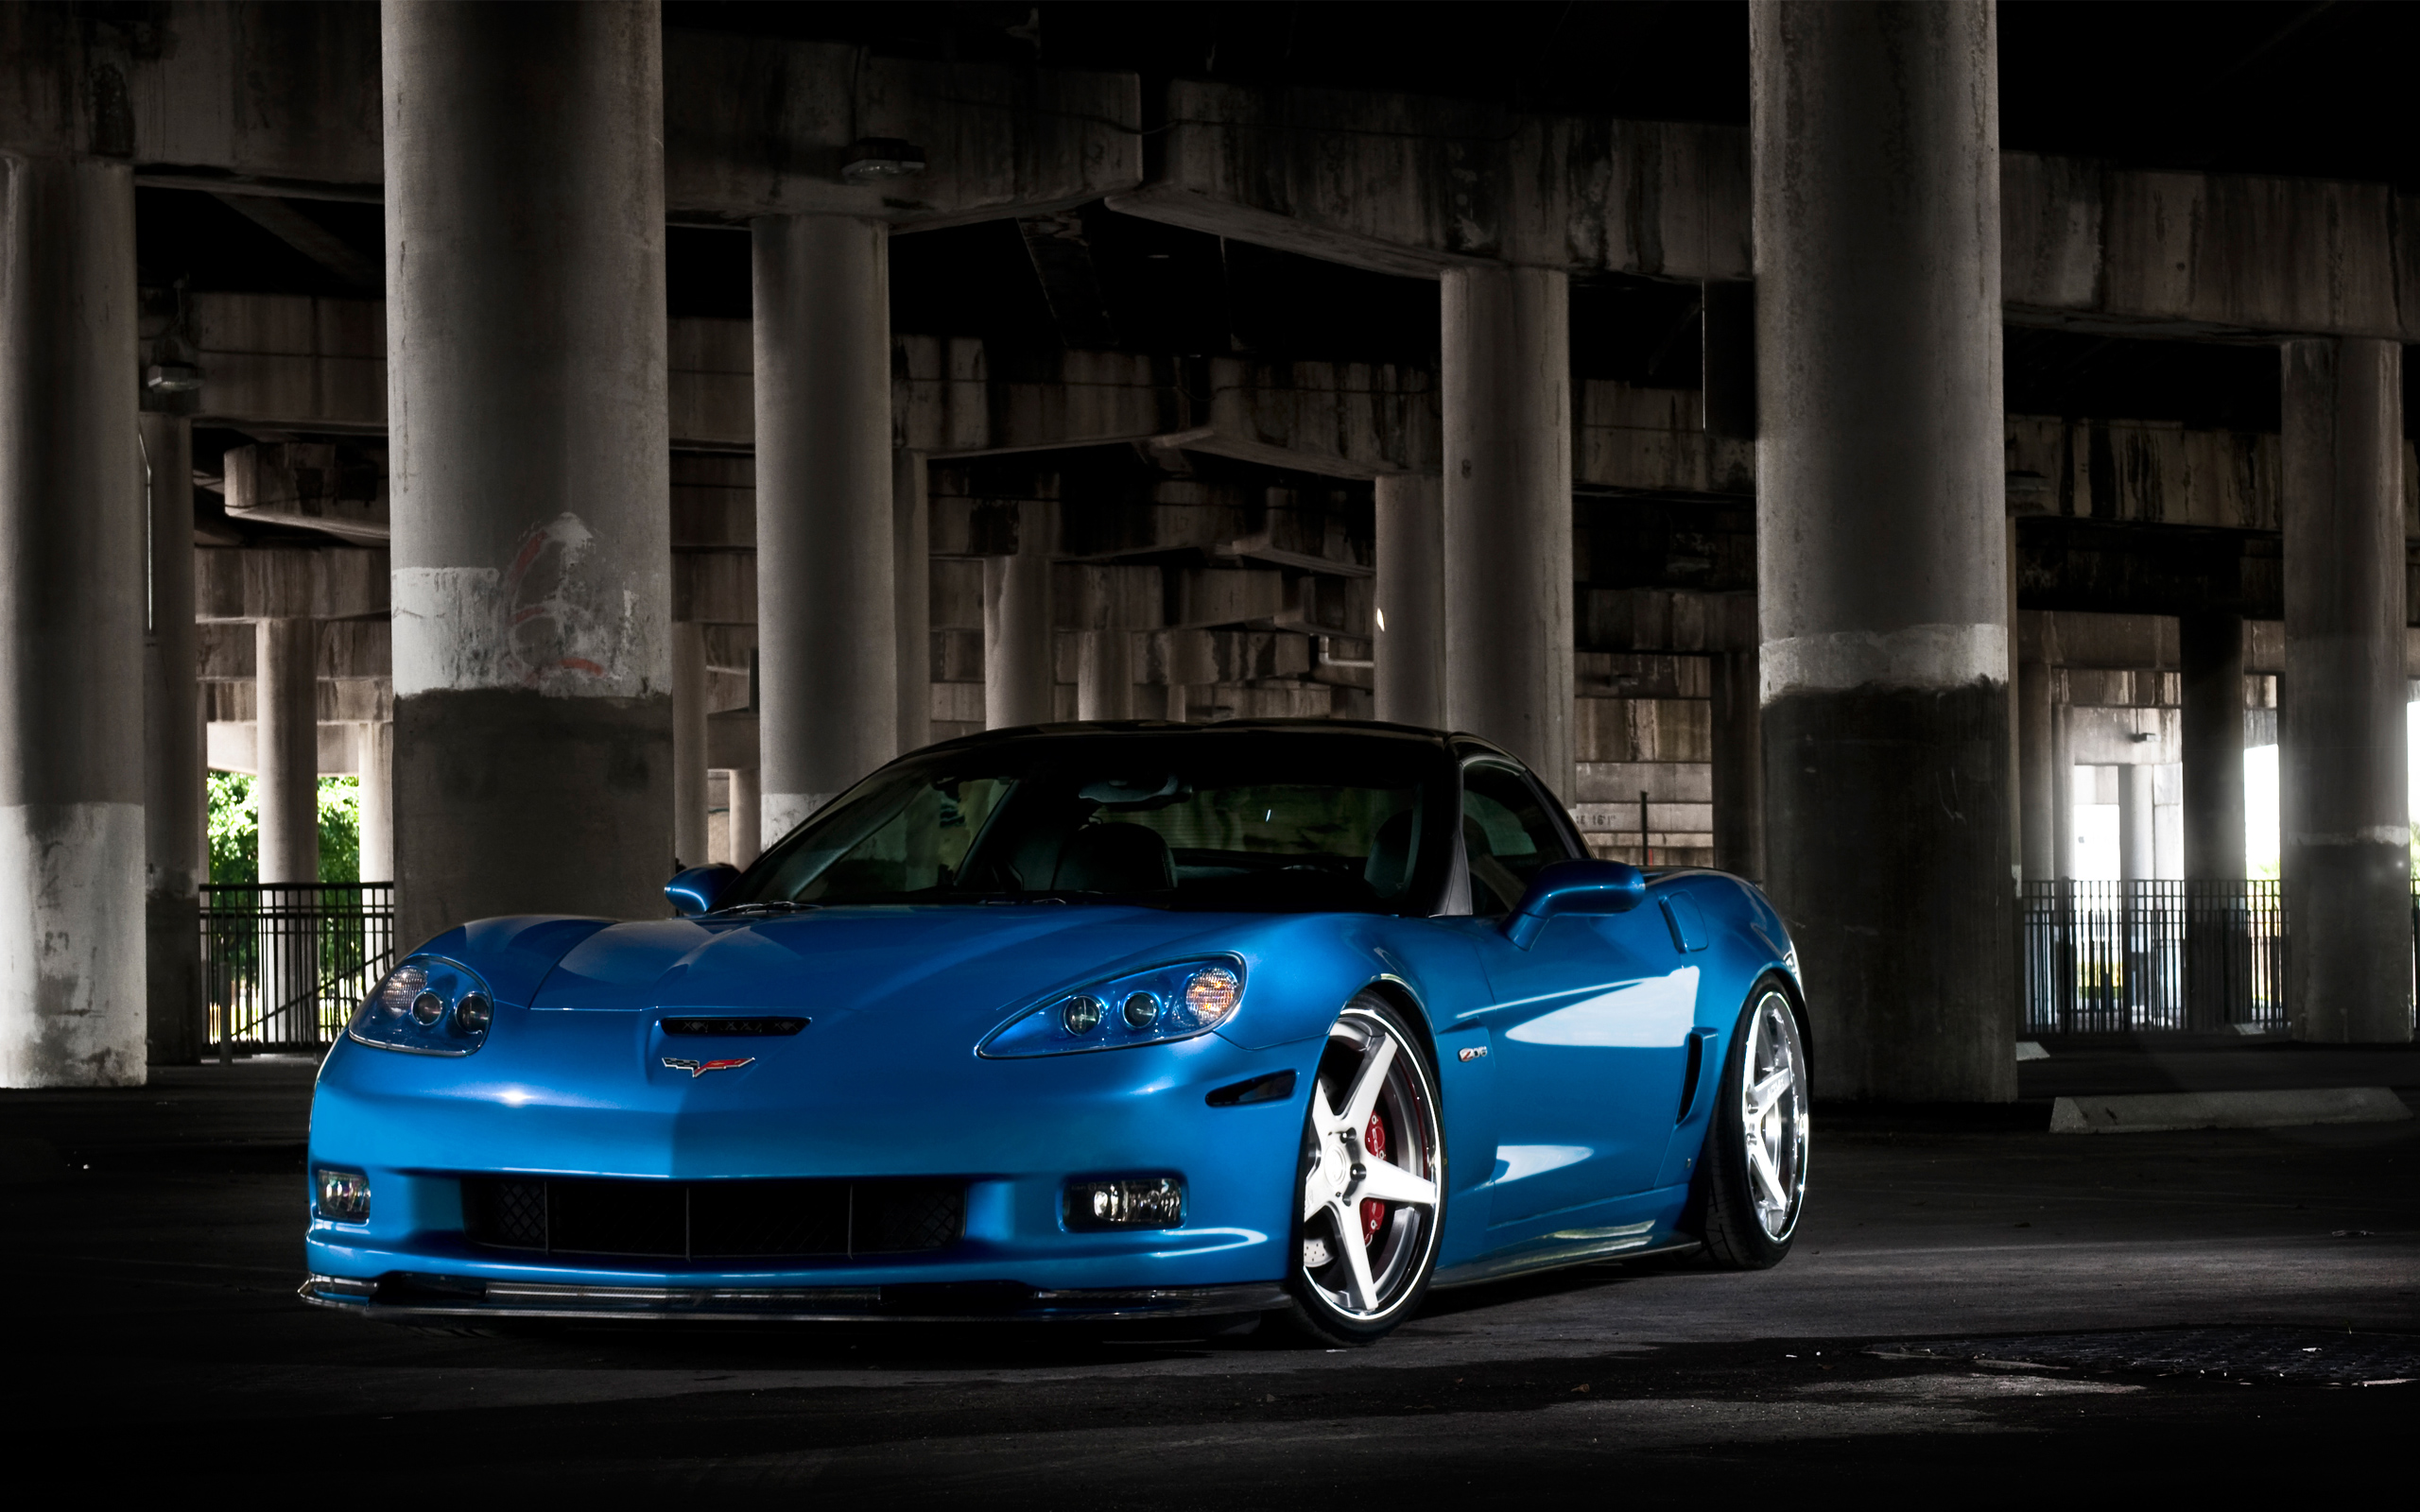 Chevrolet Corvette C6 ZR1 Car 846.52 Kb